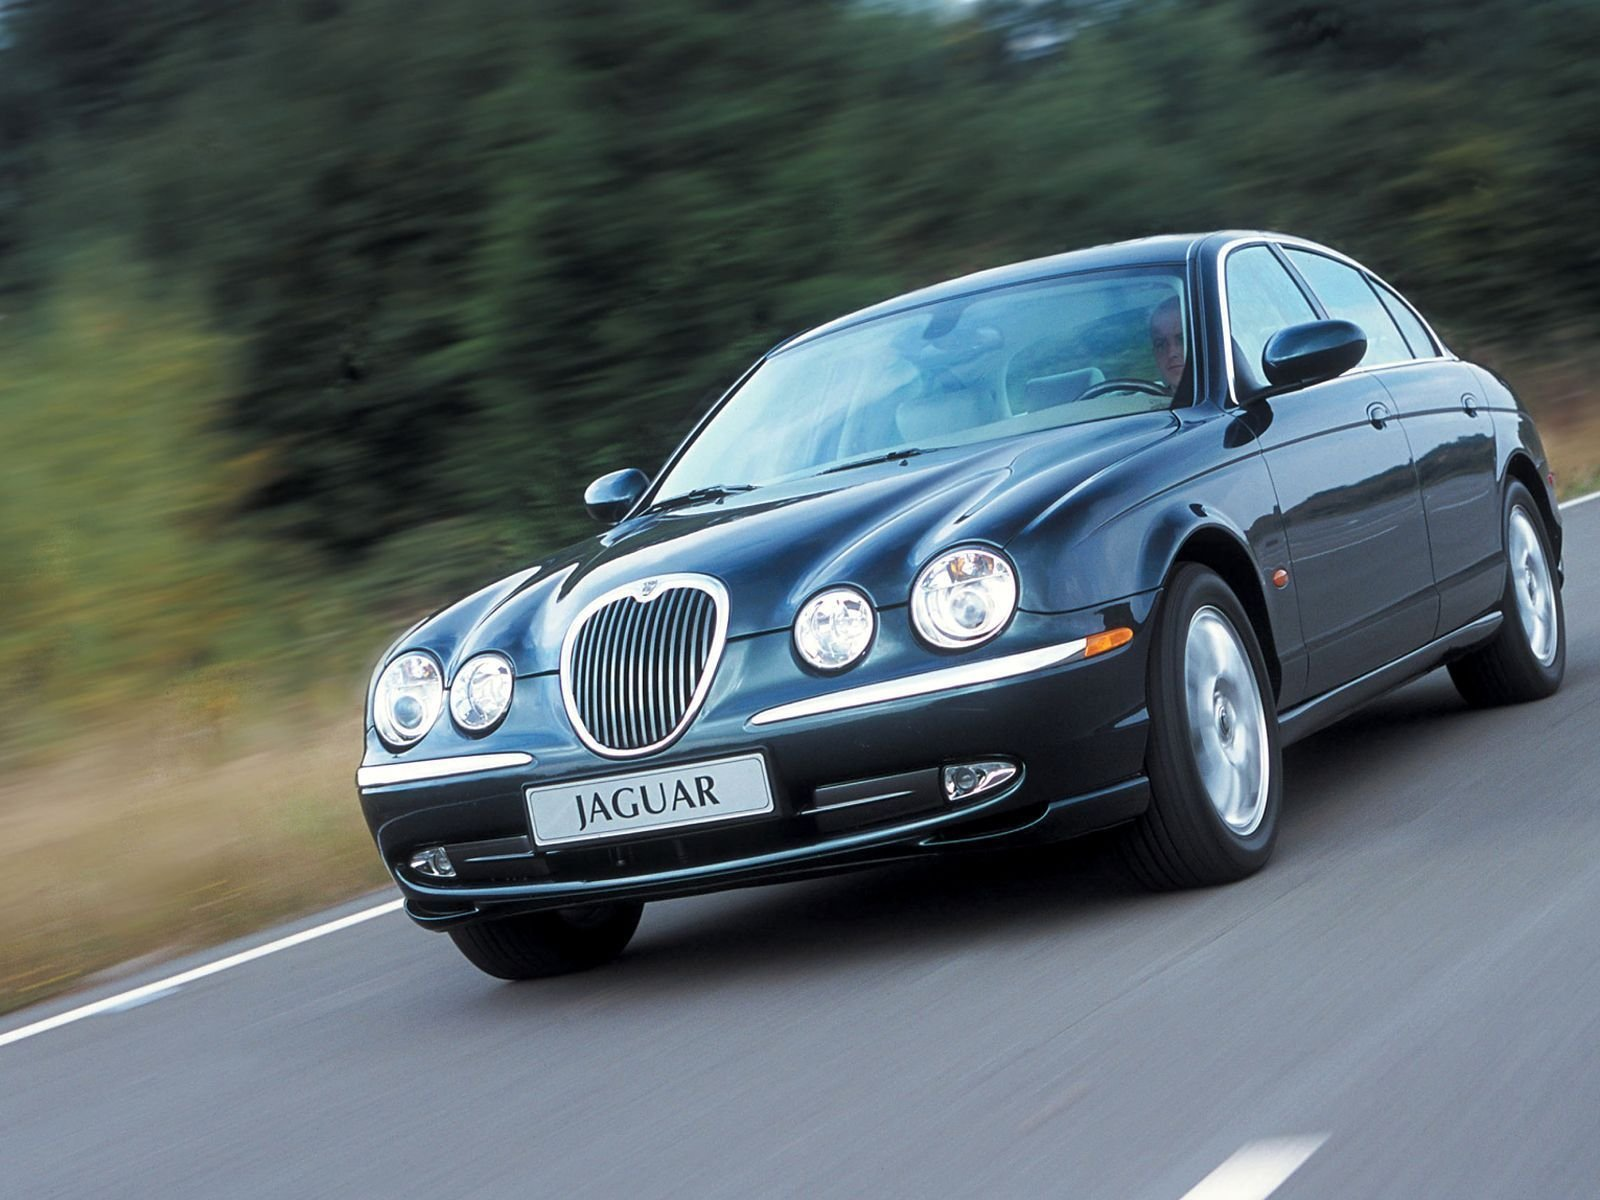 2004 jaguar s type picture 24823 car review top speed. Black Bedroom Furniture Sets. Home Design Ideas